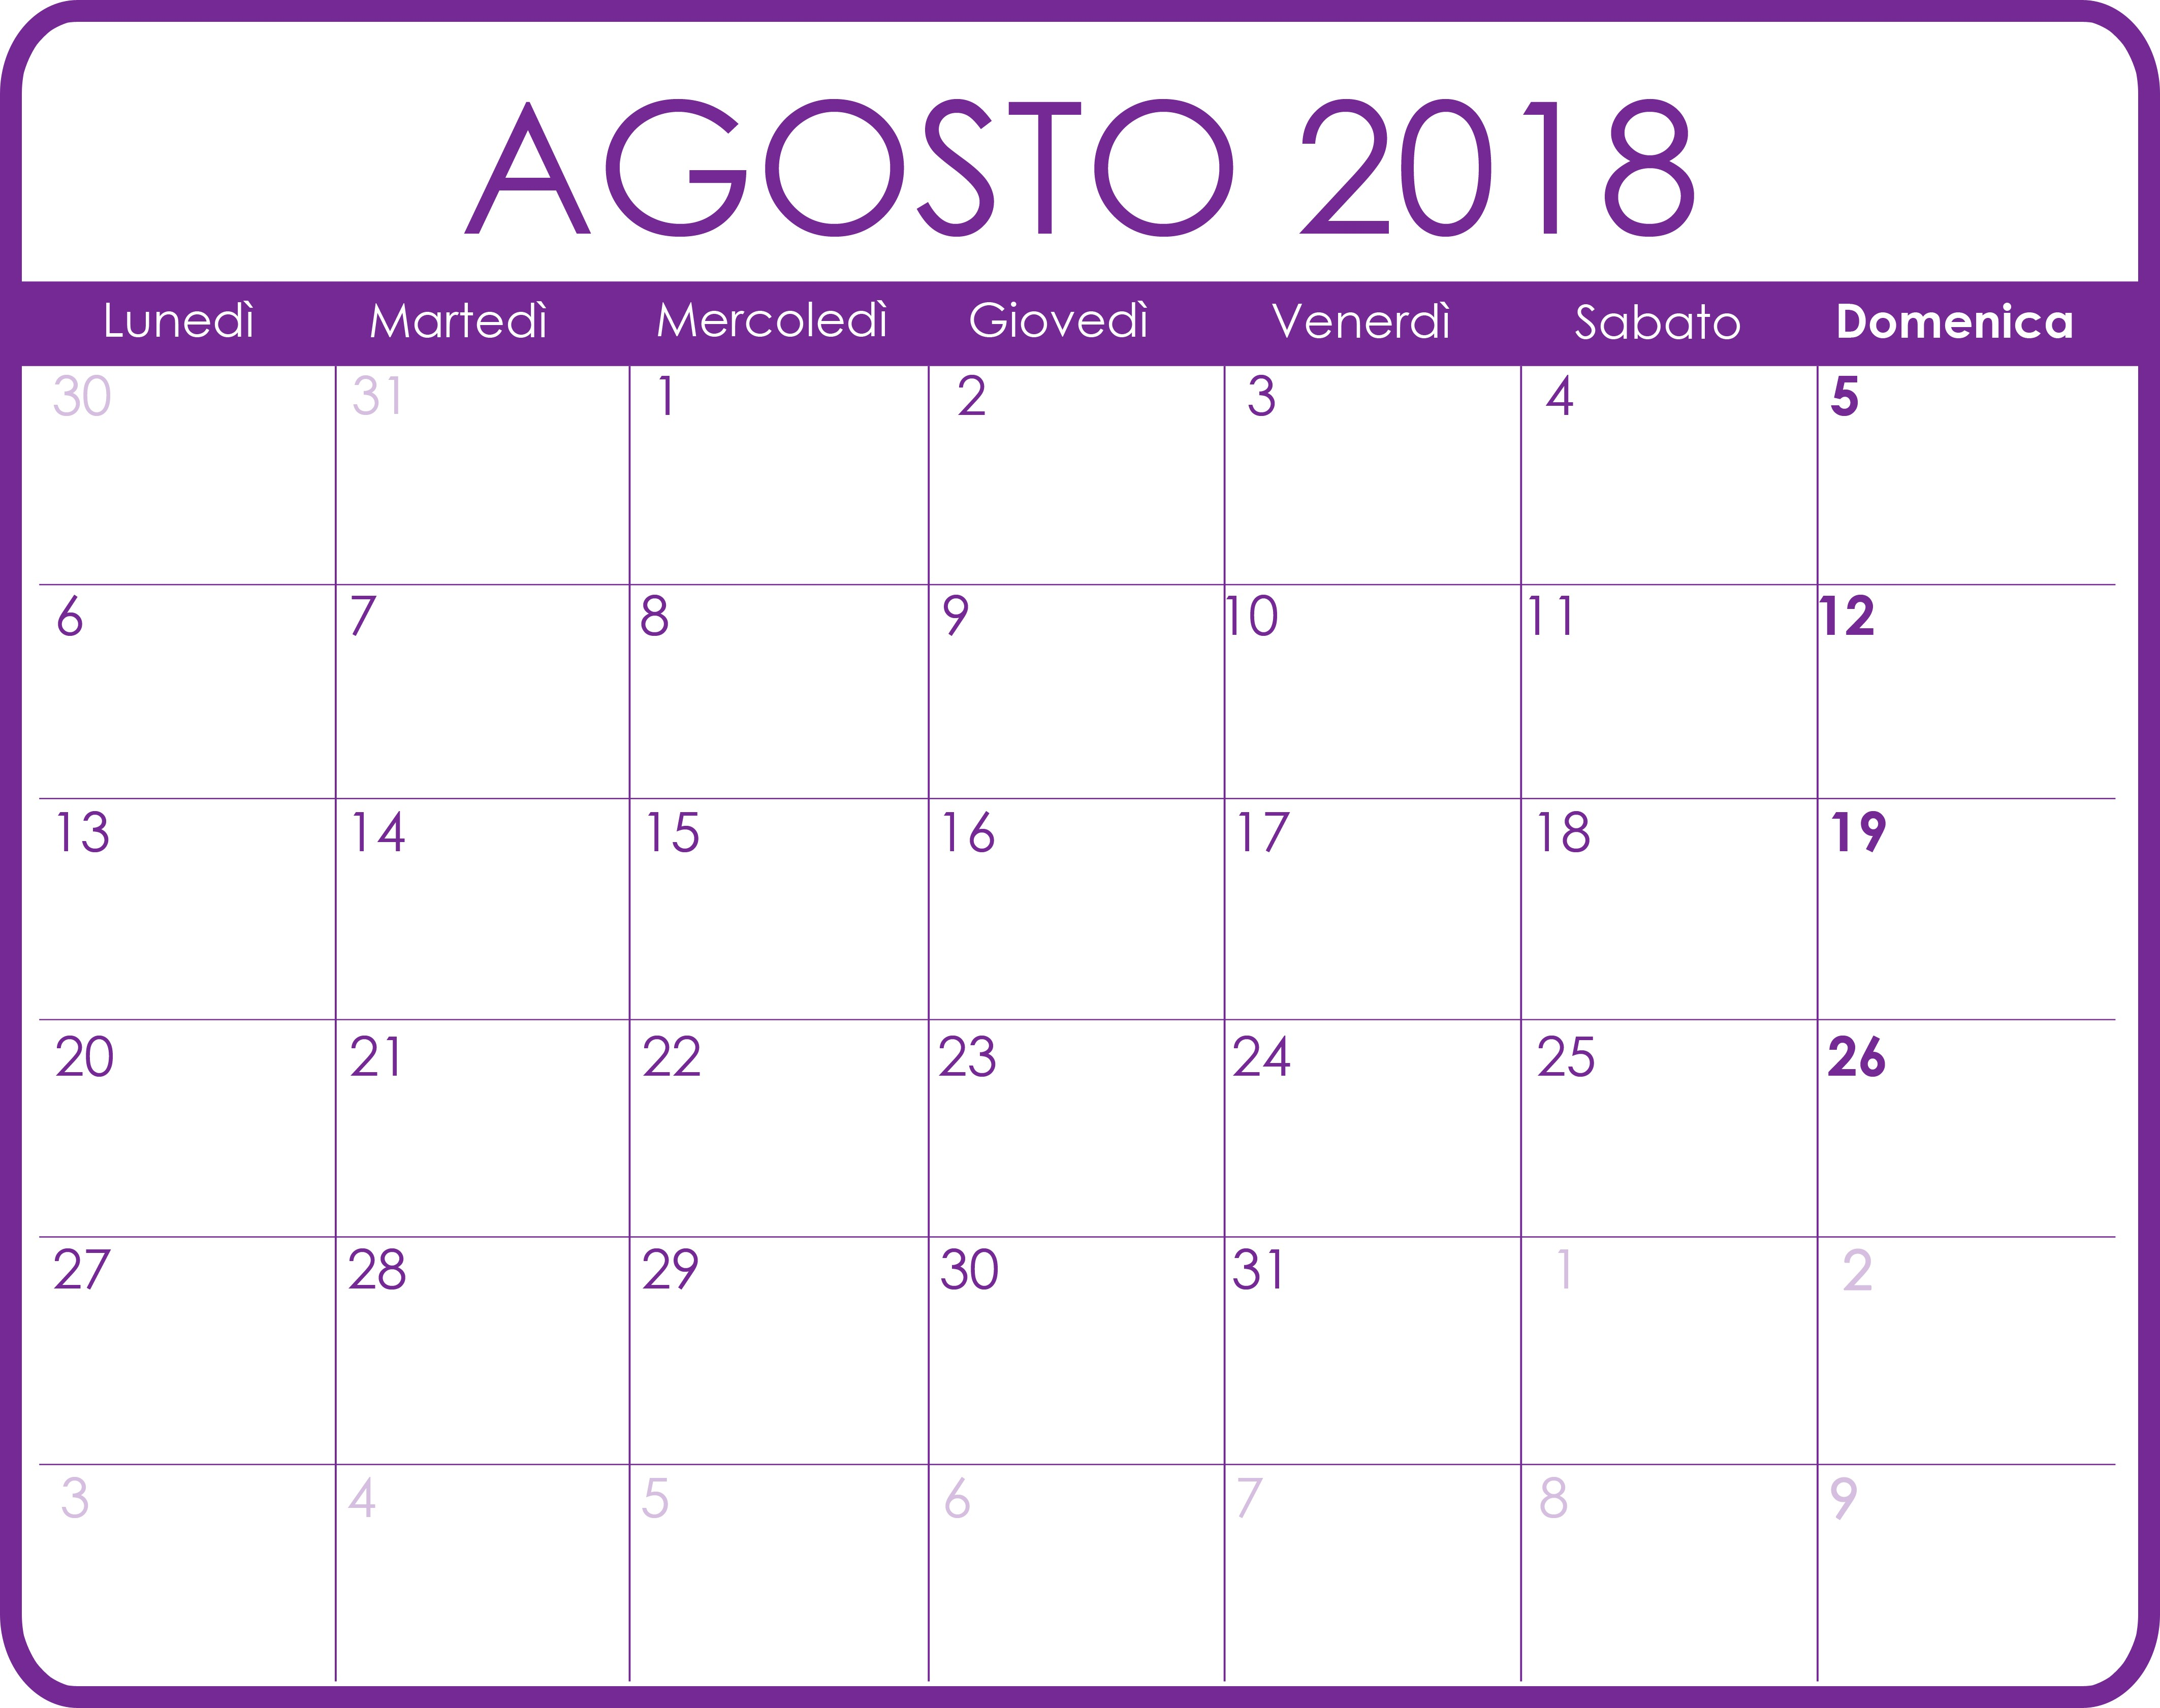 Calendario Abril 2019 Excel Más Reciente Calendario Agosto 2018 Calendario Agosto 2018 Pdf Word Excel Of Calendario Abril 2019 Excel Recientes Calendario Julio 2019 Papeler­a Pinterest